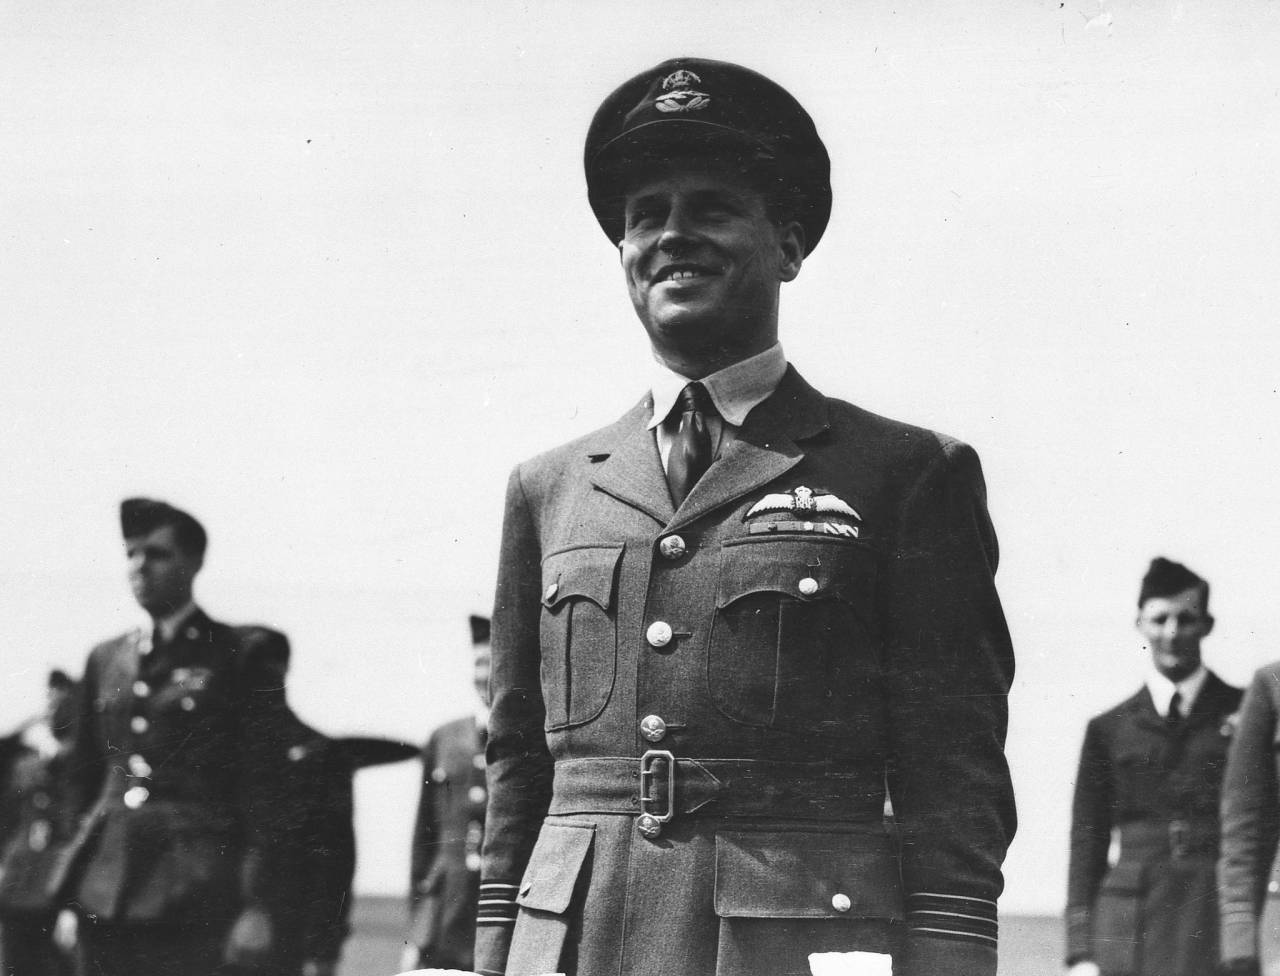 Guy Gibson awarded Victoria Cross Description: Wing Commander Guy Gibson awarded Victoria Cross for Dambusters raid Date: 1943